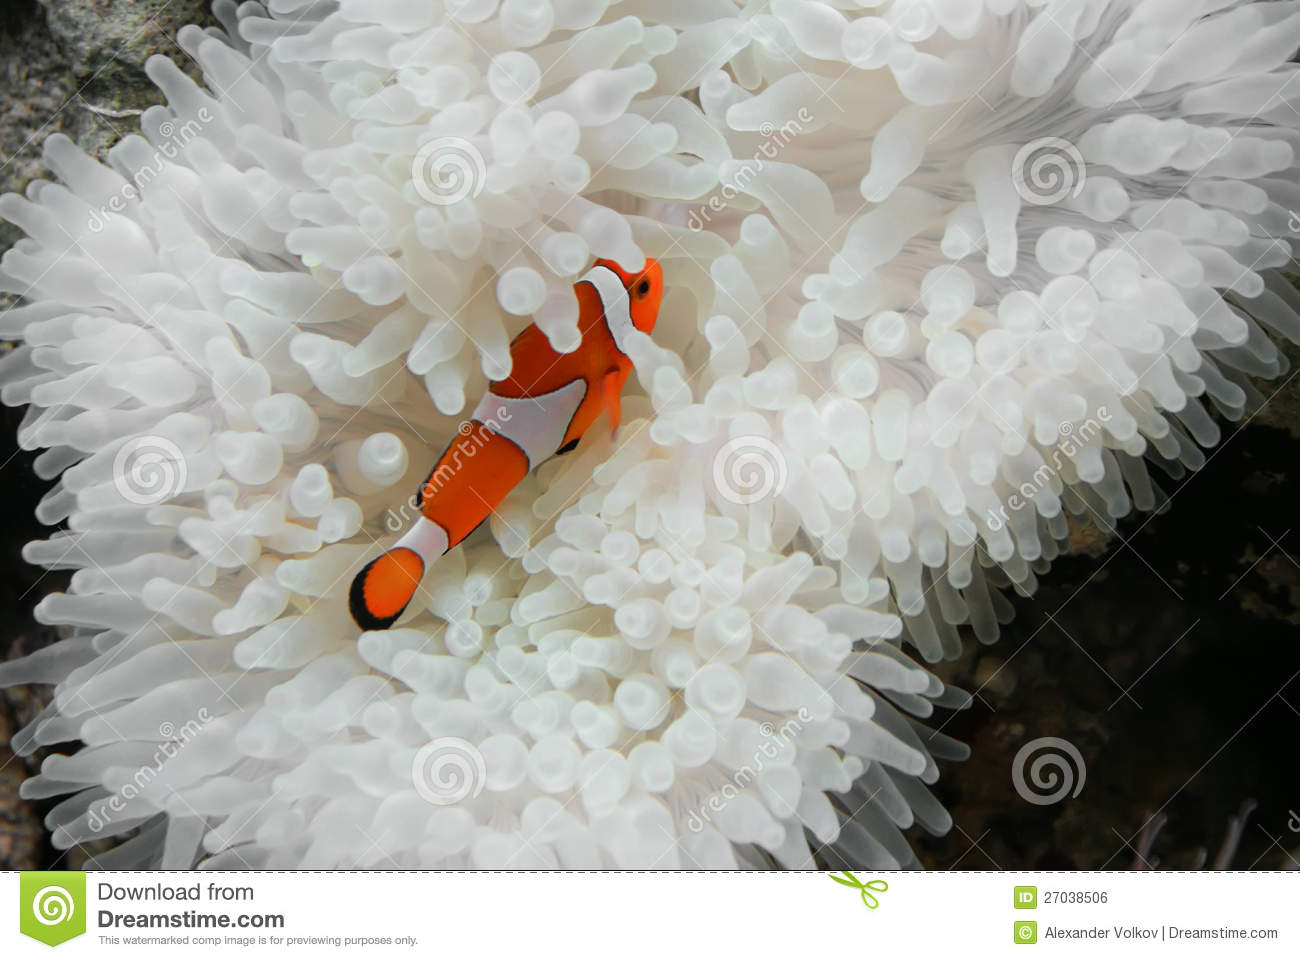 Clownfish i anemon